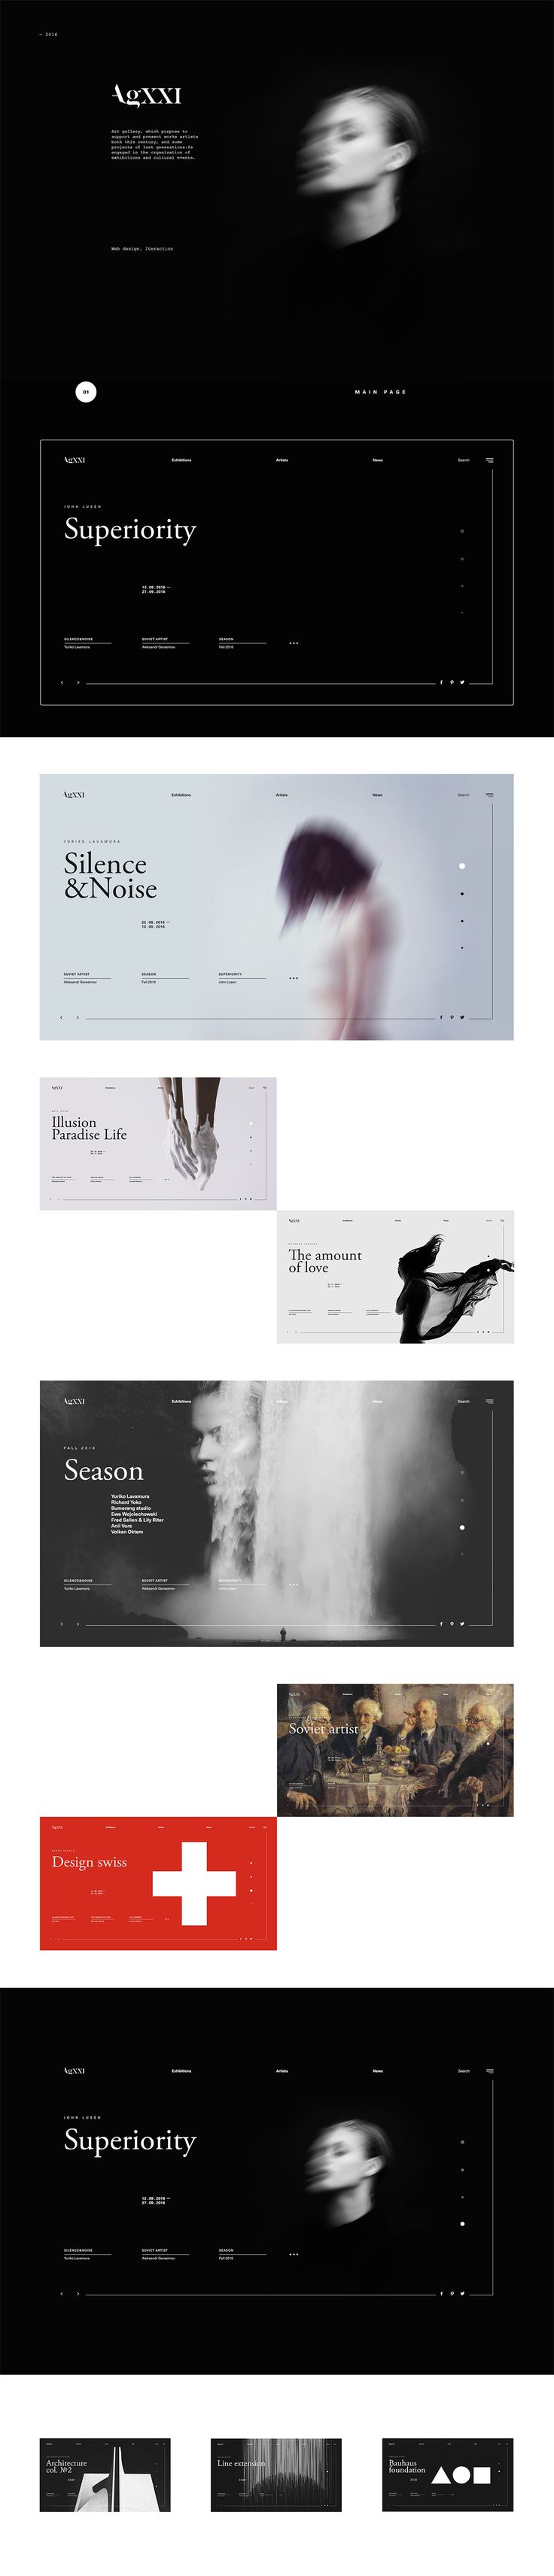 AgXXI | Website #1 #web #design #art #gallery #UI #iteractions